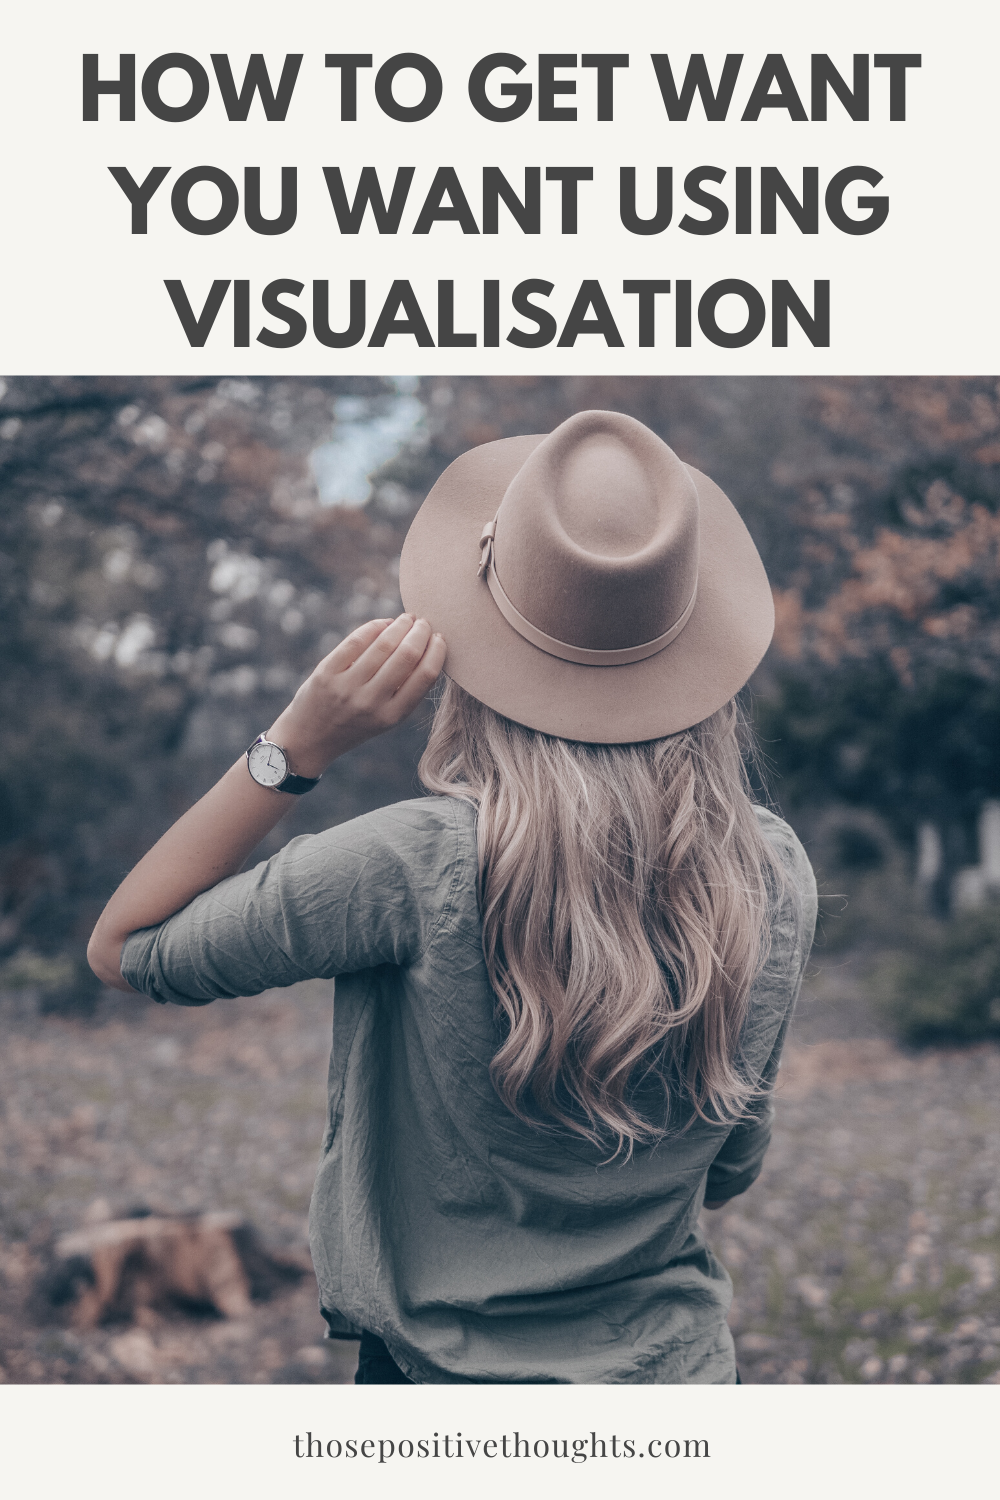 How to get want you want using visualisation